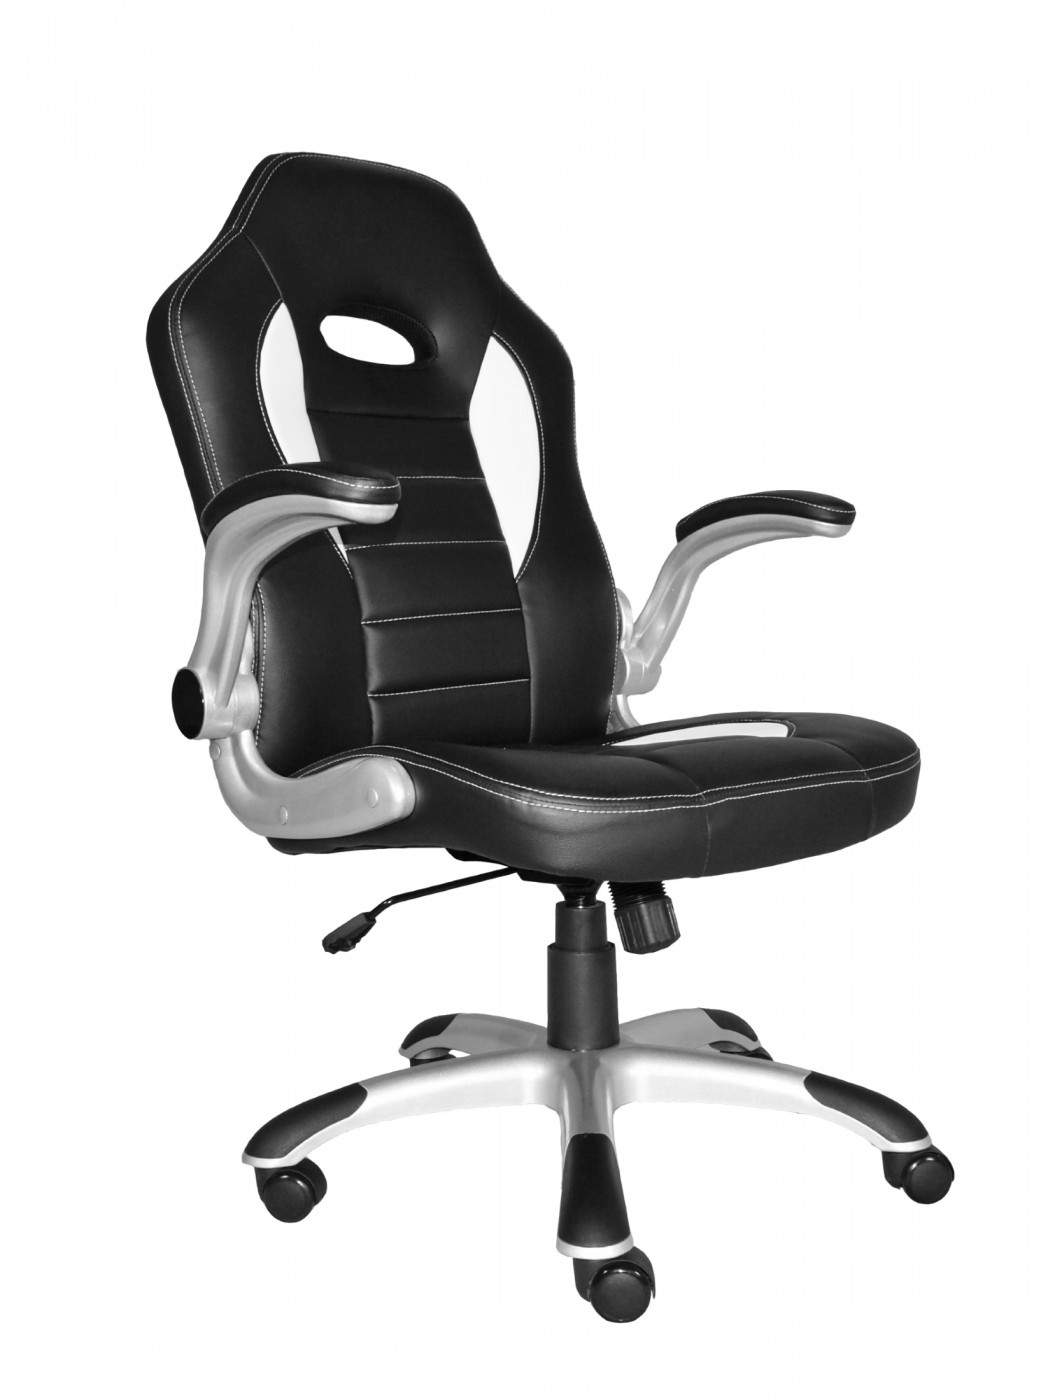 talladega racing style office chair aoc8211whi 121